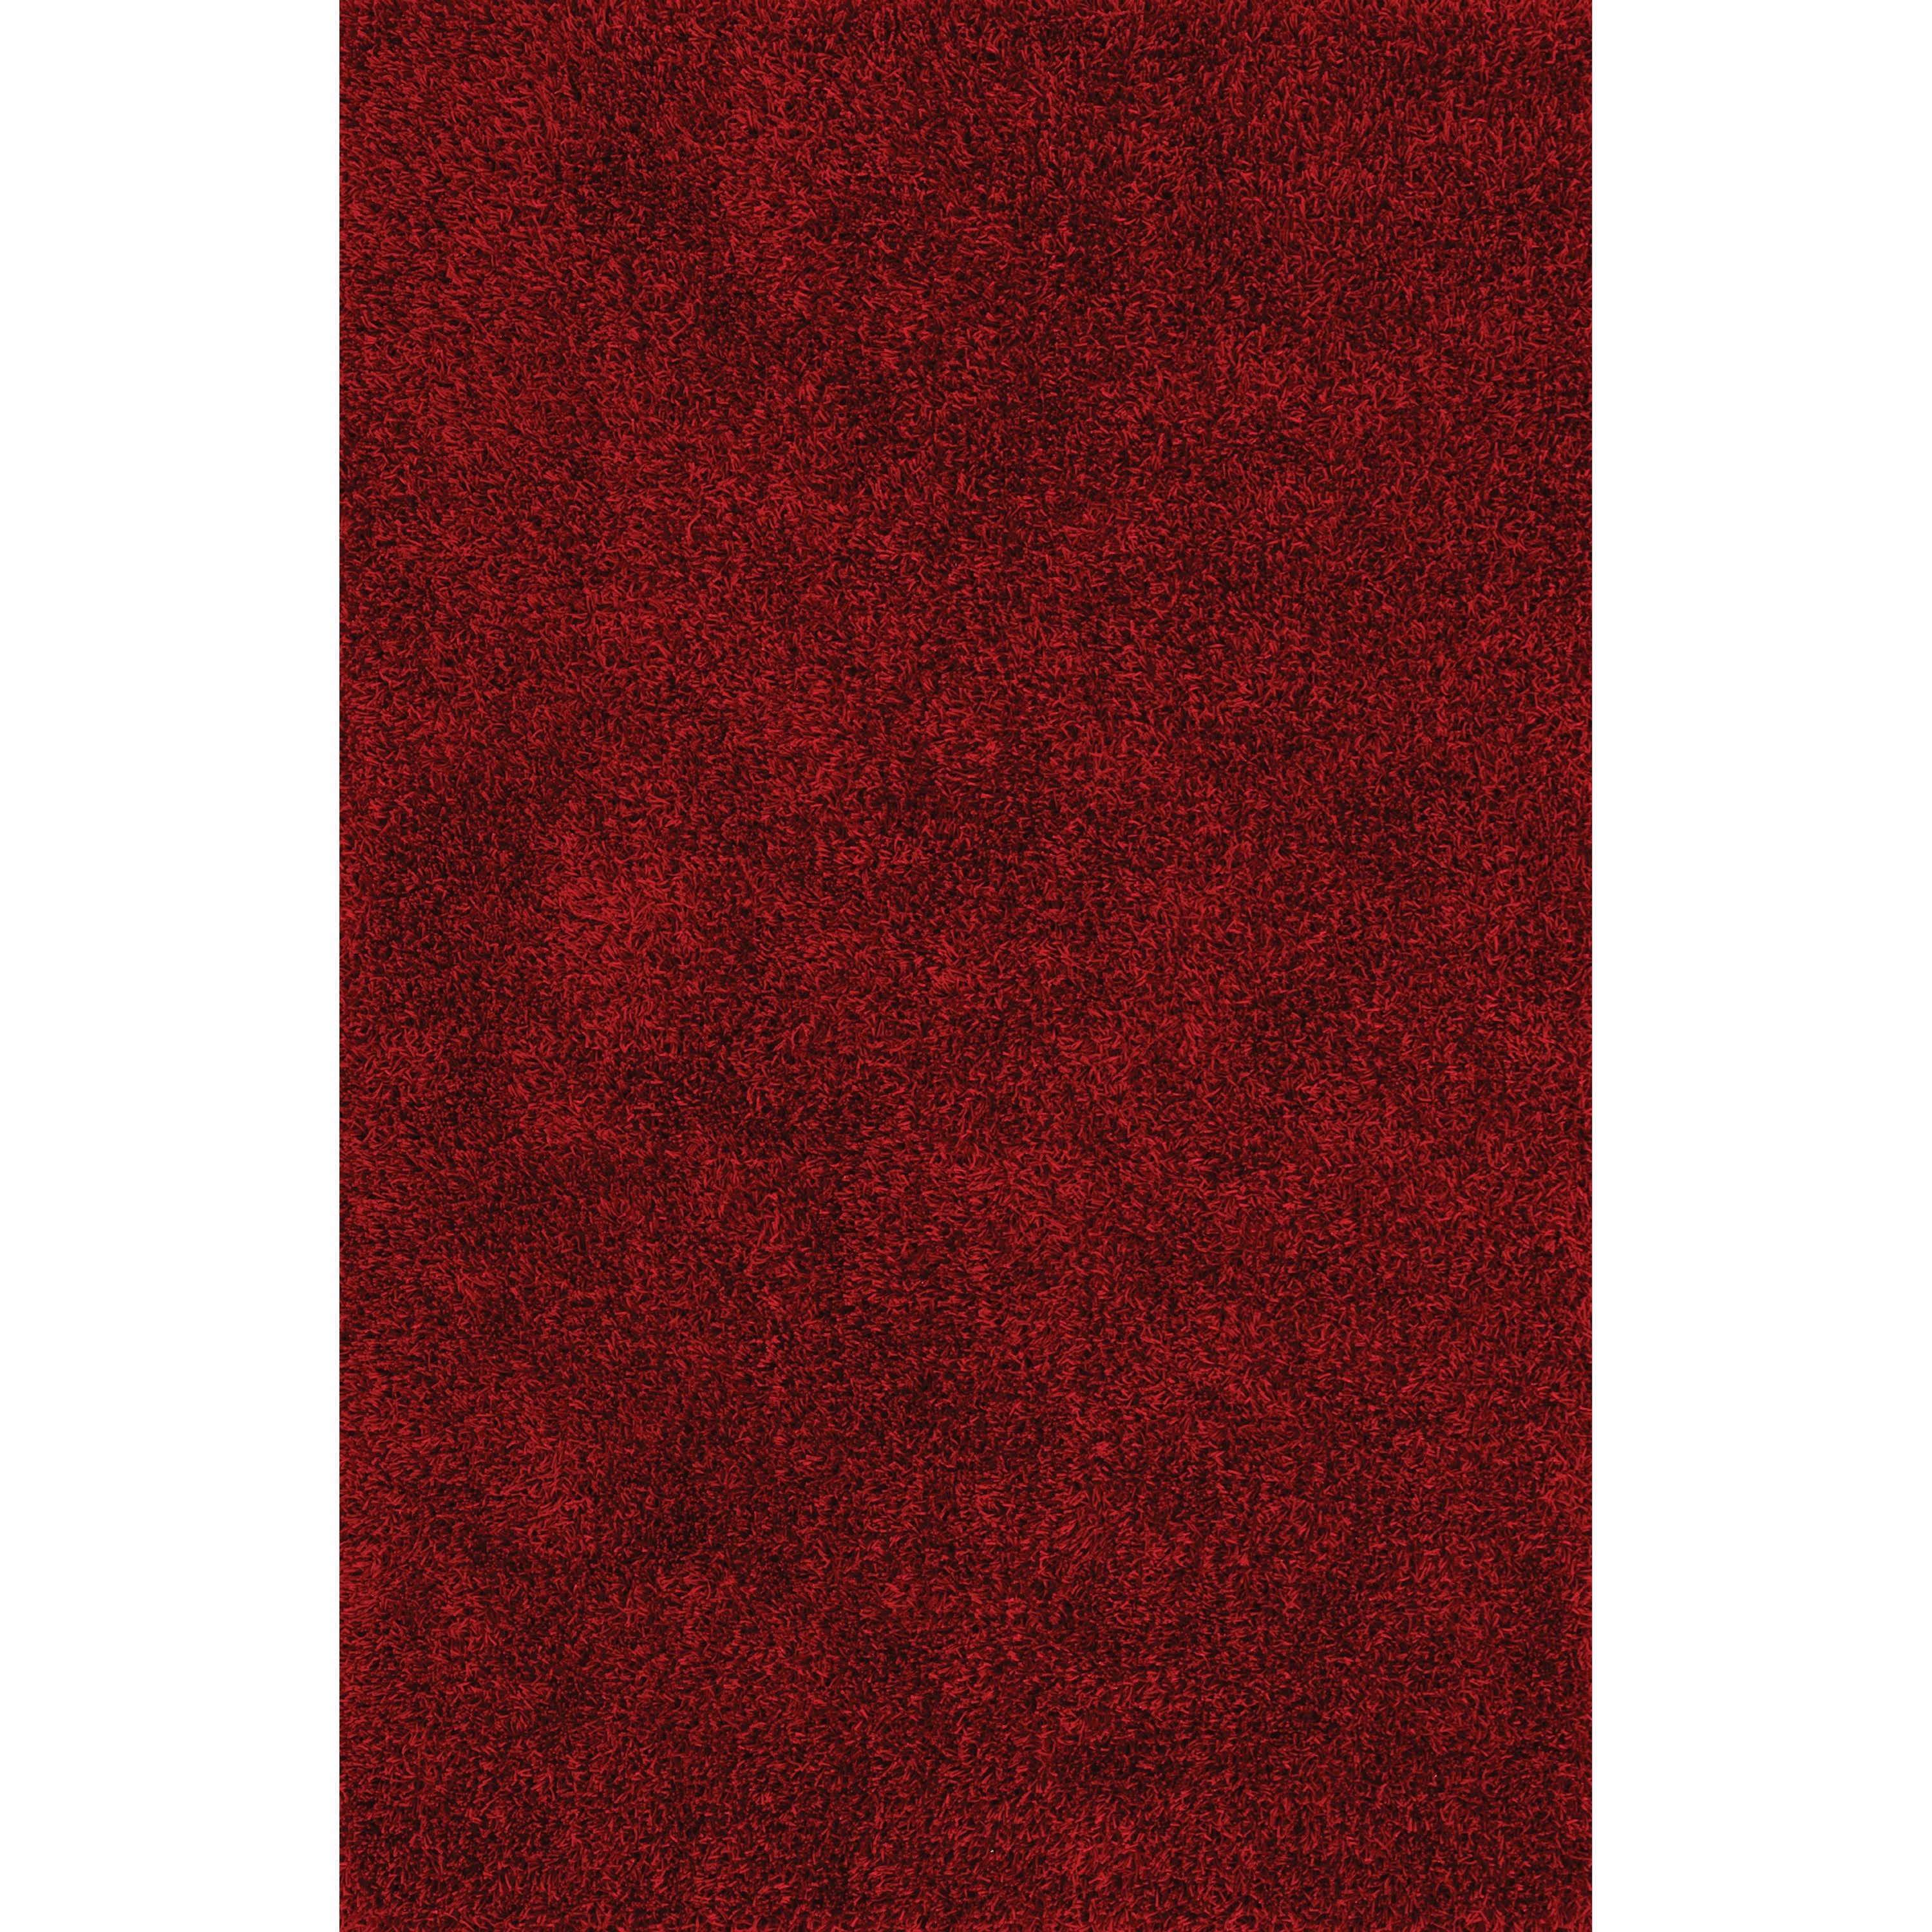 """Dalyn Illusions Red 3'6""""X5'6"""" Rug - Item Number: IL69RD4X6"""